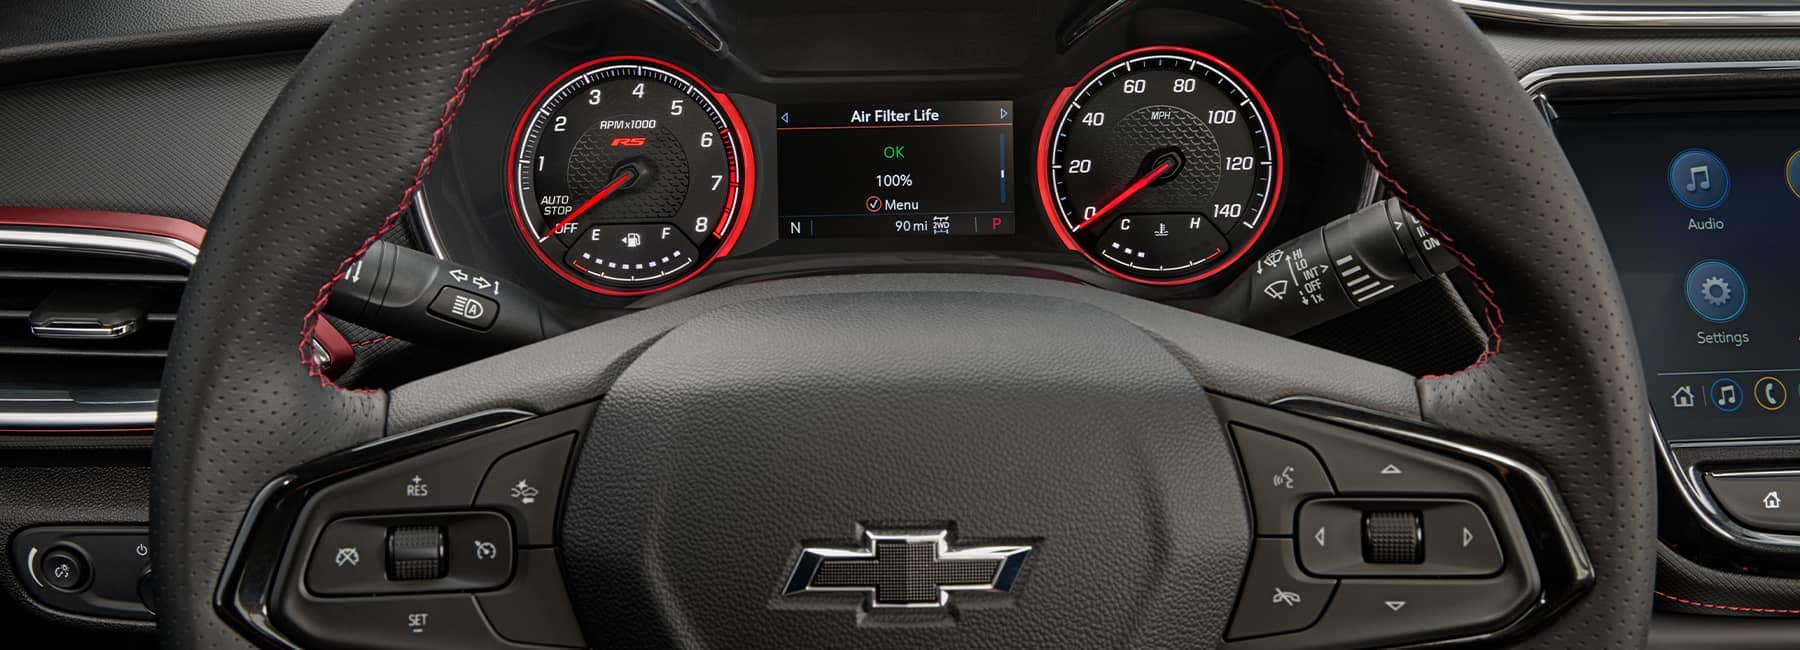 2021 Chevrolet Trailblazer Steering Wheel